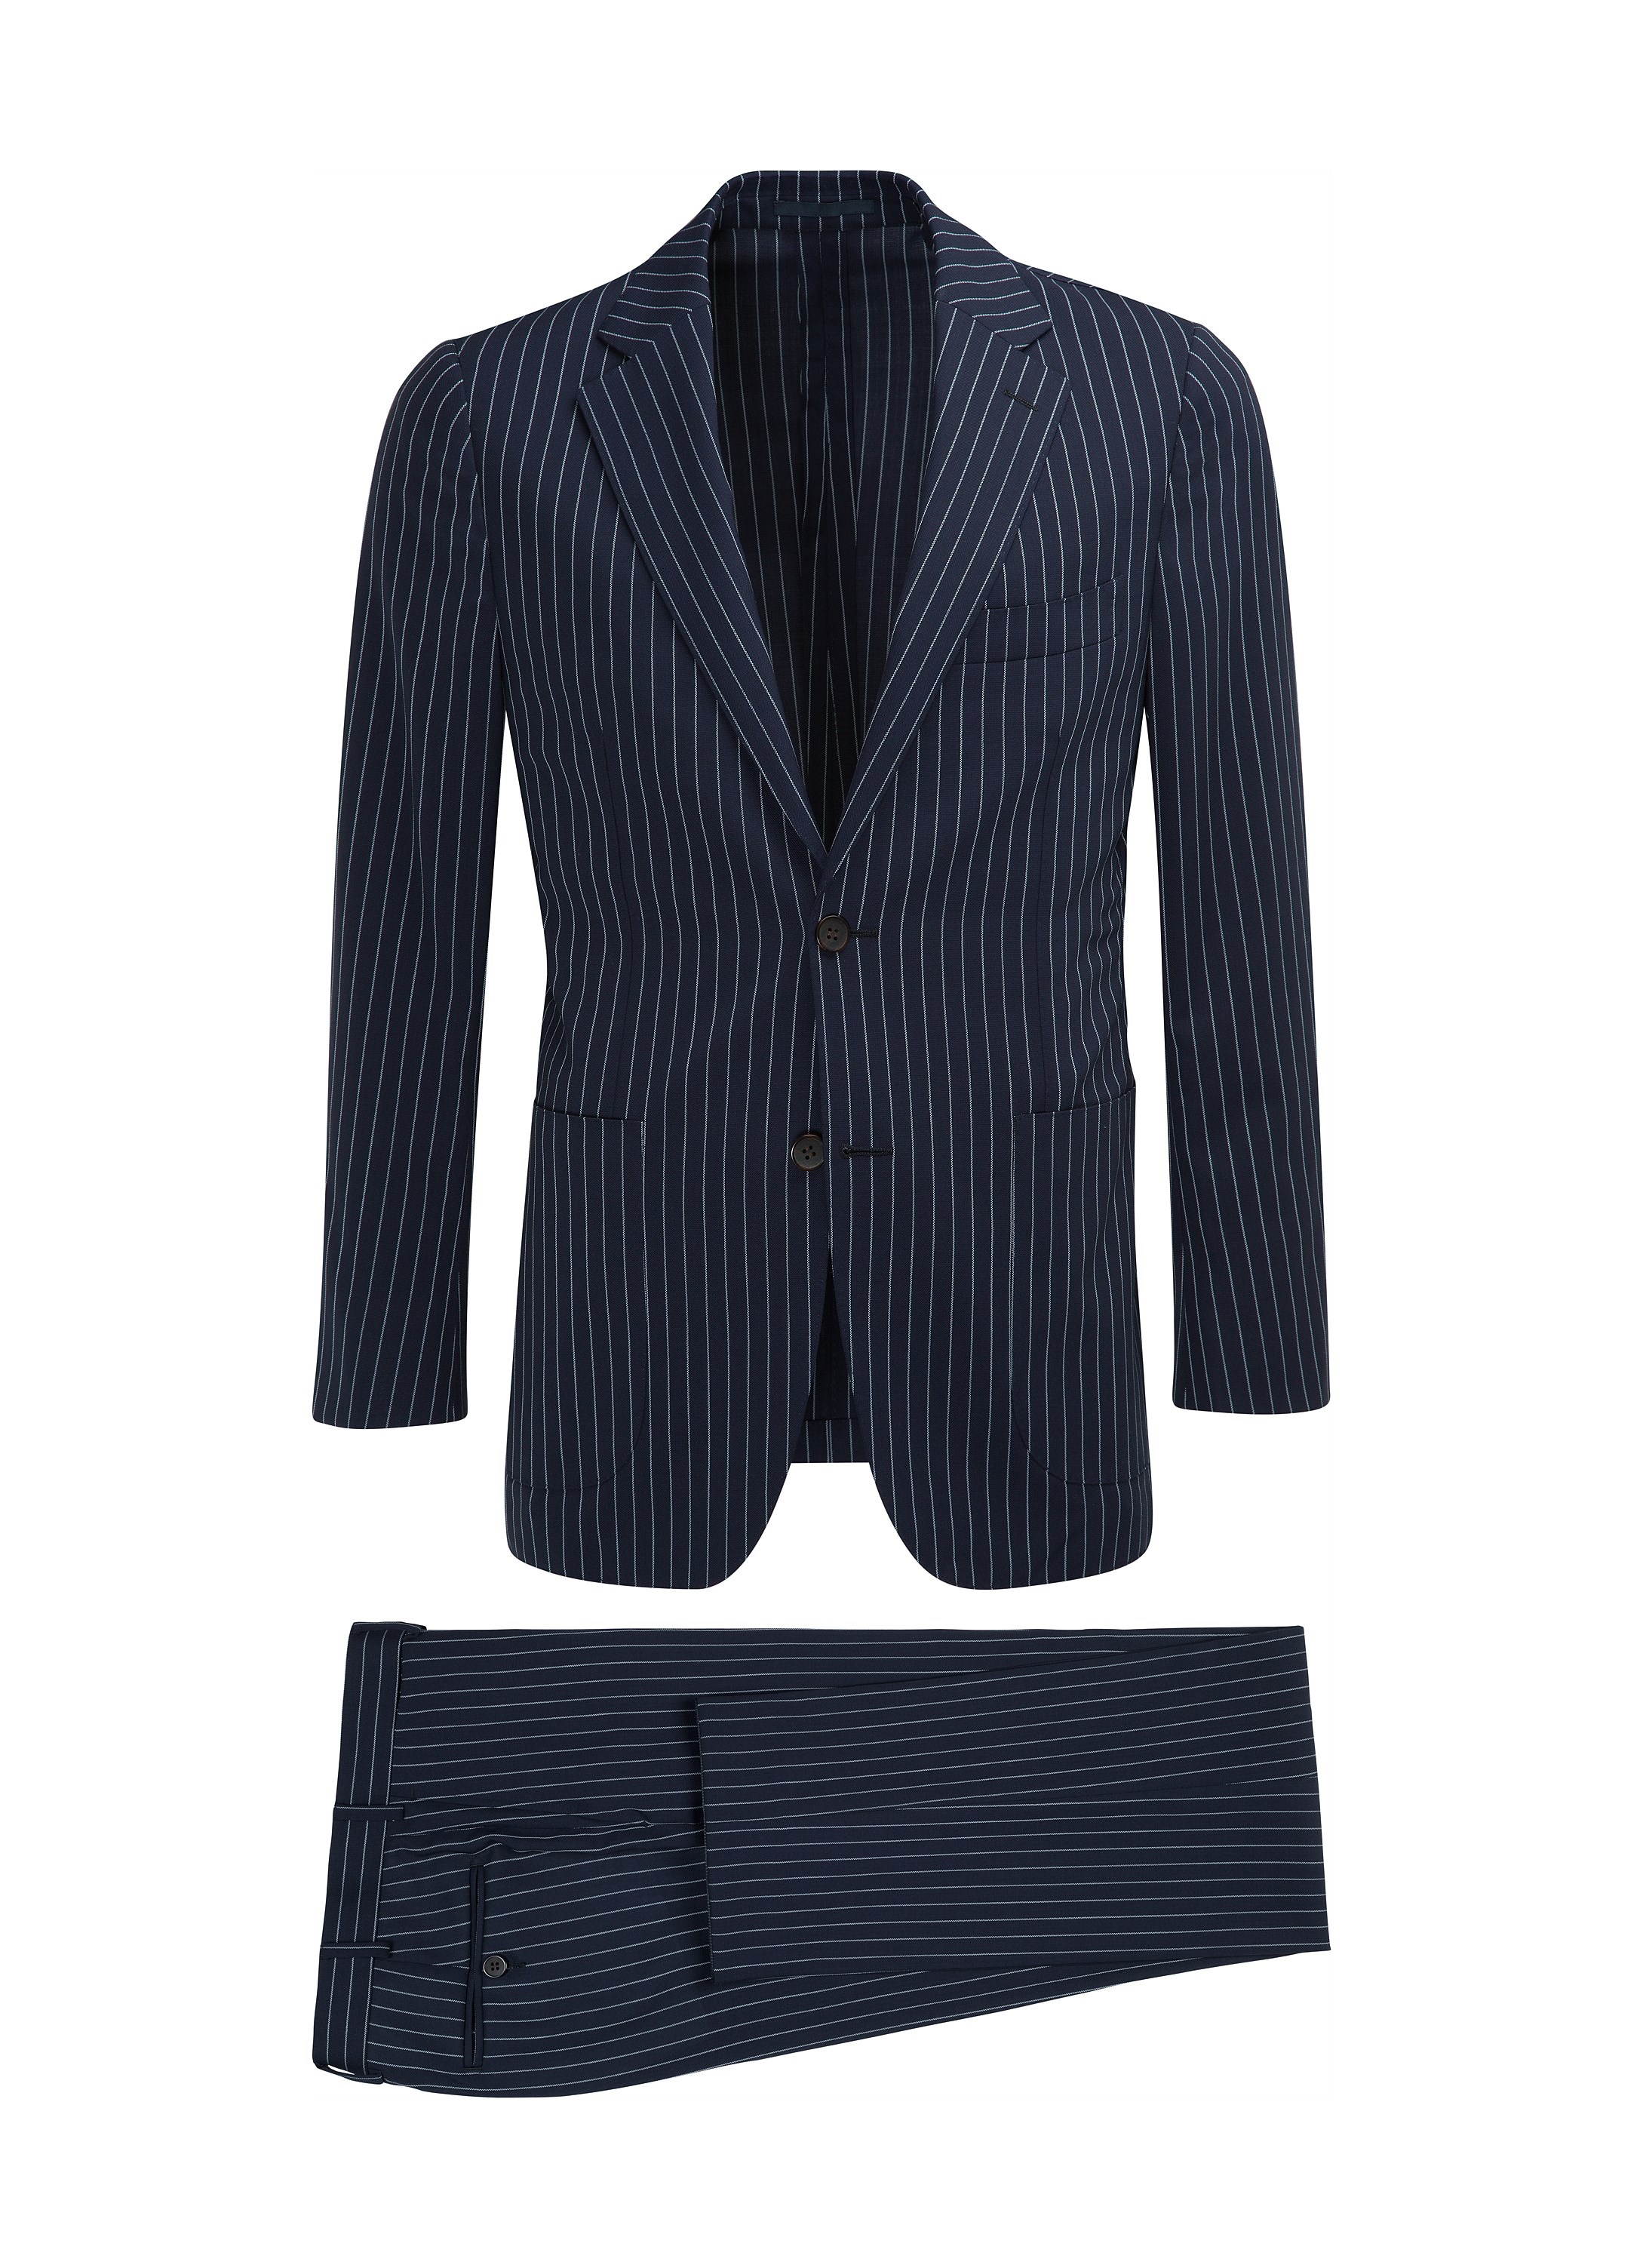 Suits_Blue_Stripe_Havana_P5112_Suitsupply_Online_Store_5.jpg